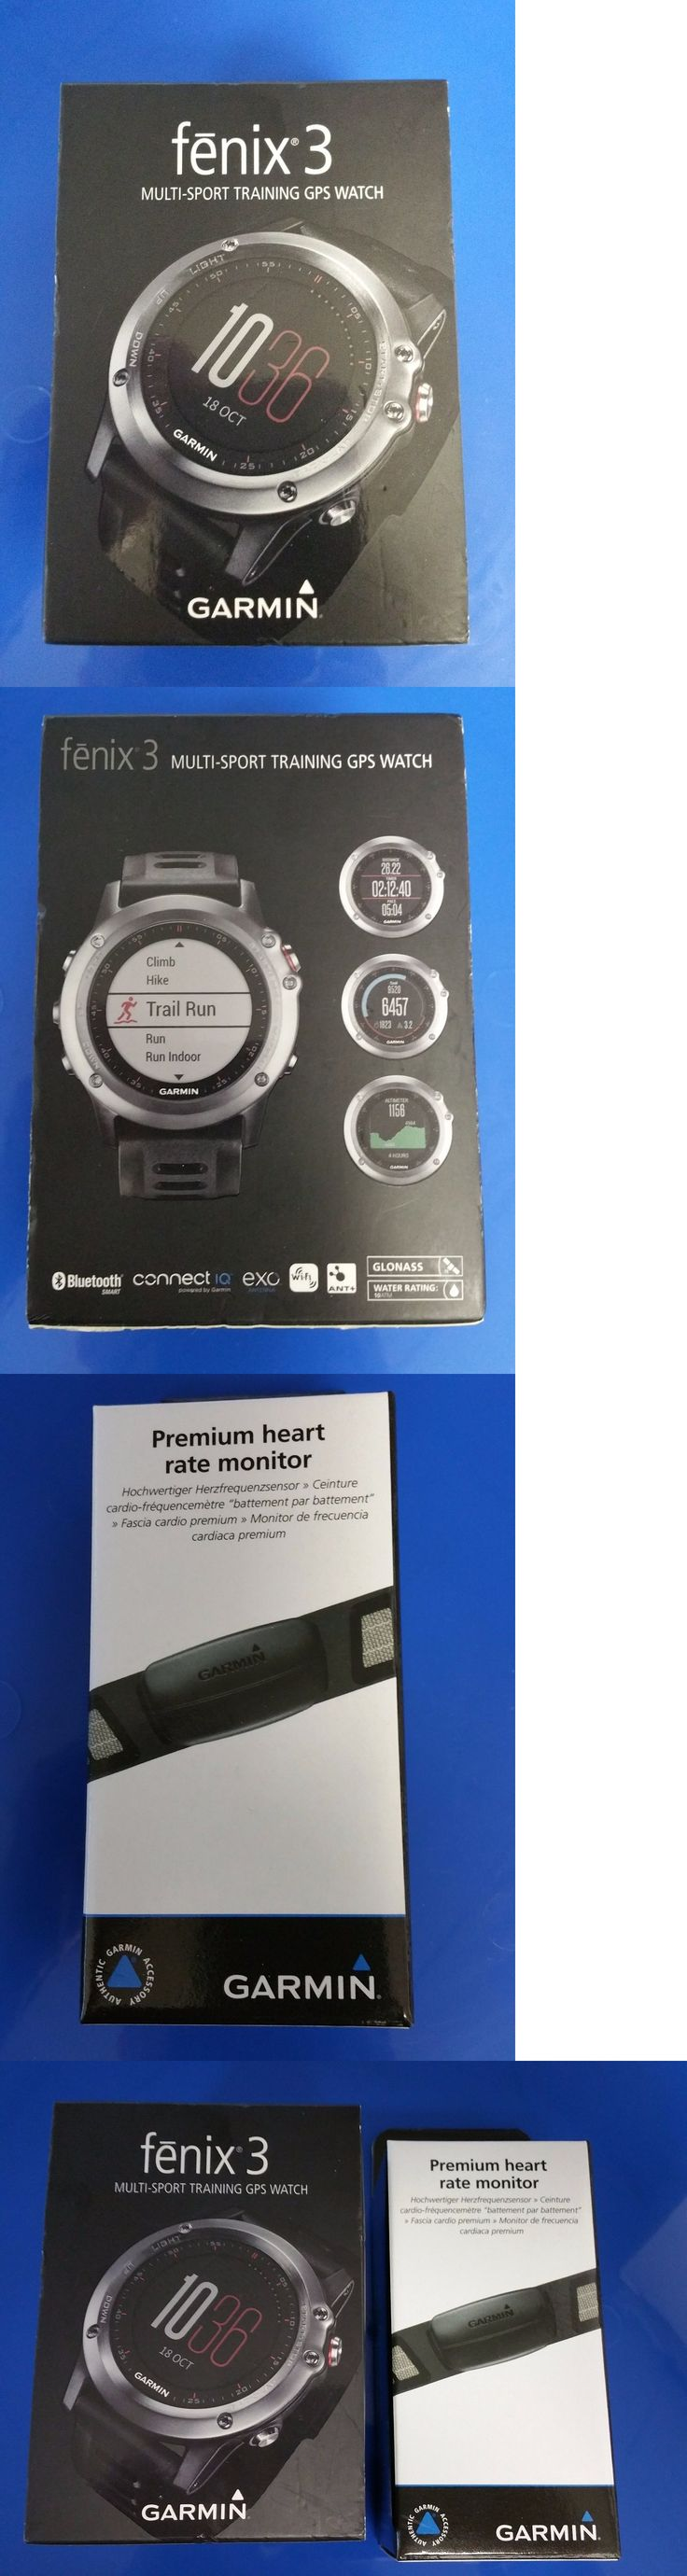 GPS and Running Watches 75230: Garmin Fenix 3 Outdoor Fitness Gps Watch Gray With Black Band Hrm Run Bundle New -> BUY IT NOW ONLY: $369.95 on eBay!